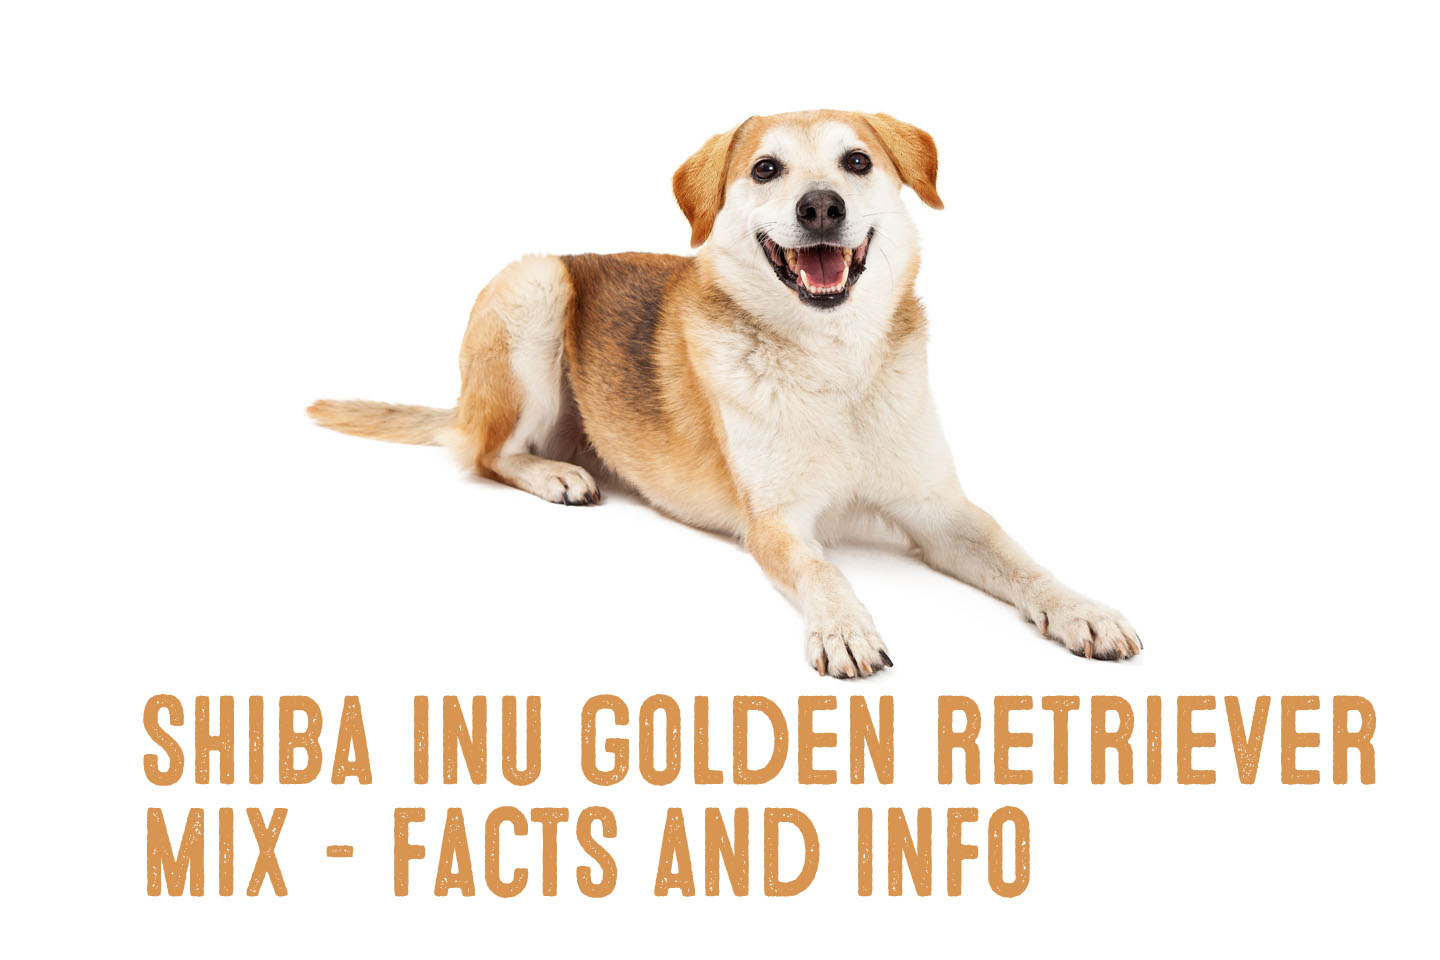 Shiba Inu Golden Retriever Mix Information And Facts